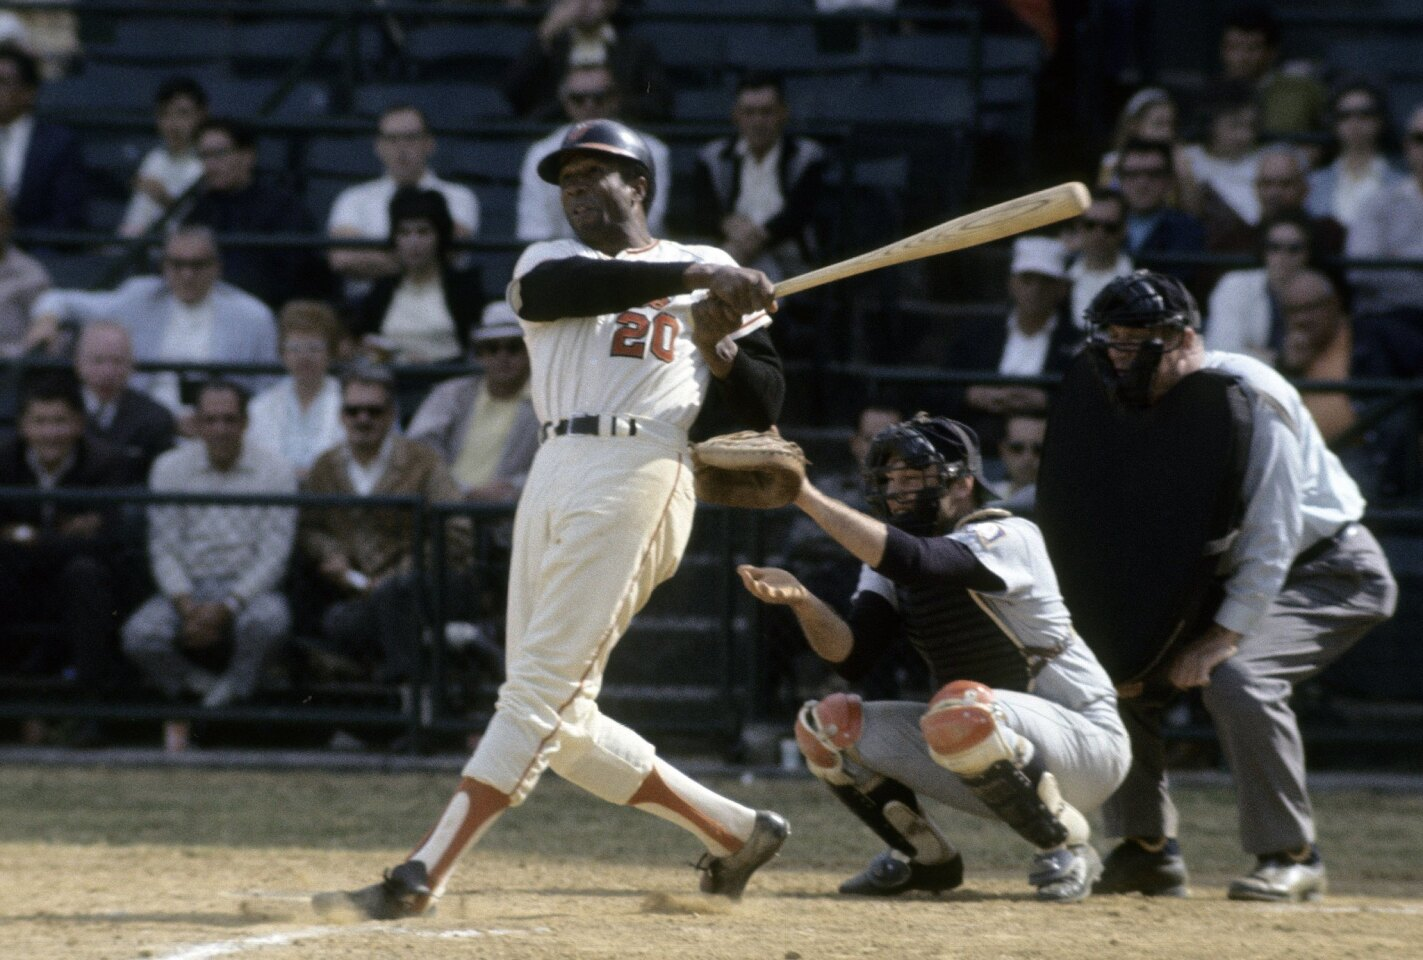 Baltimore Orioles' Frank Robinson watches the flight of his ball during a game at Memorial Stadium in Baltimore, Maryland.